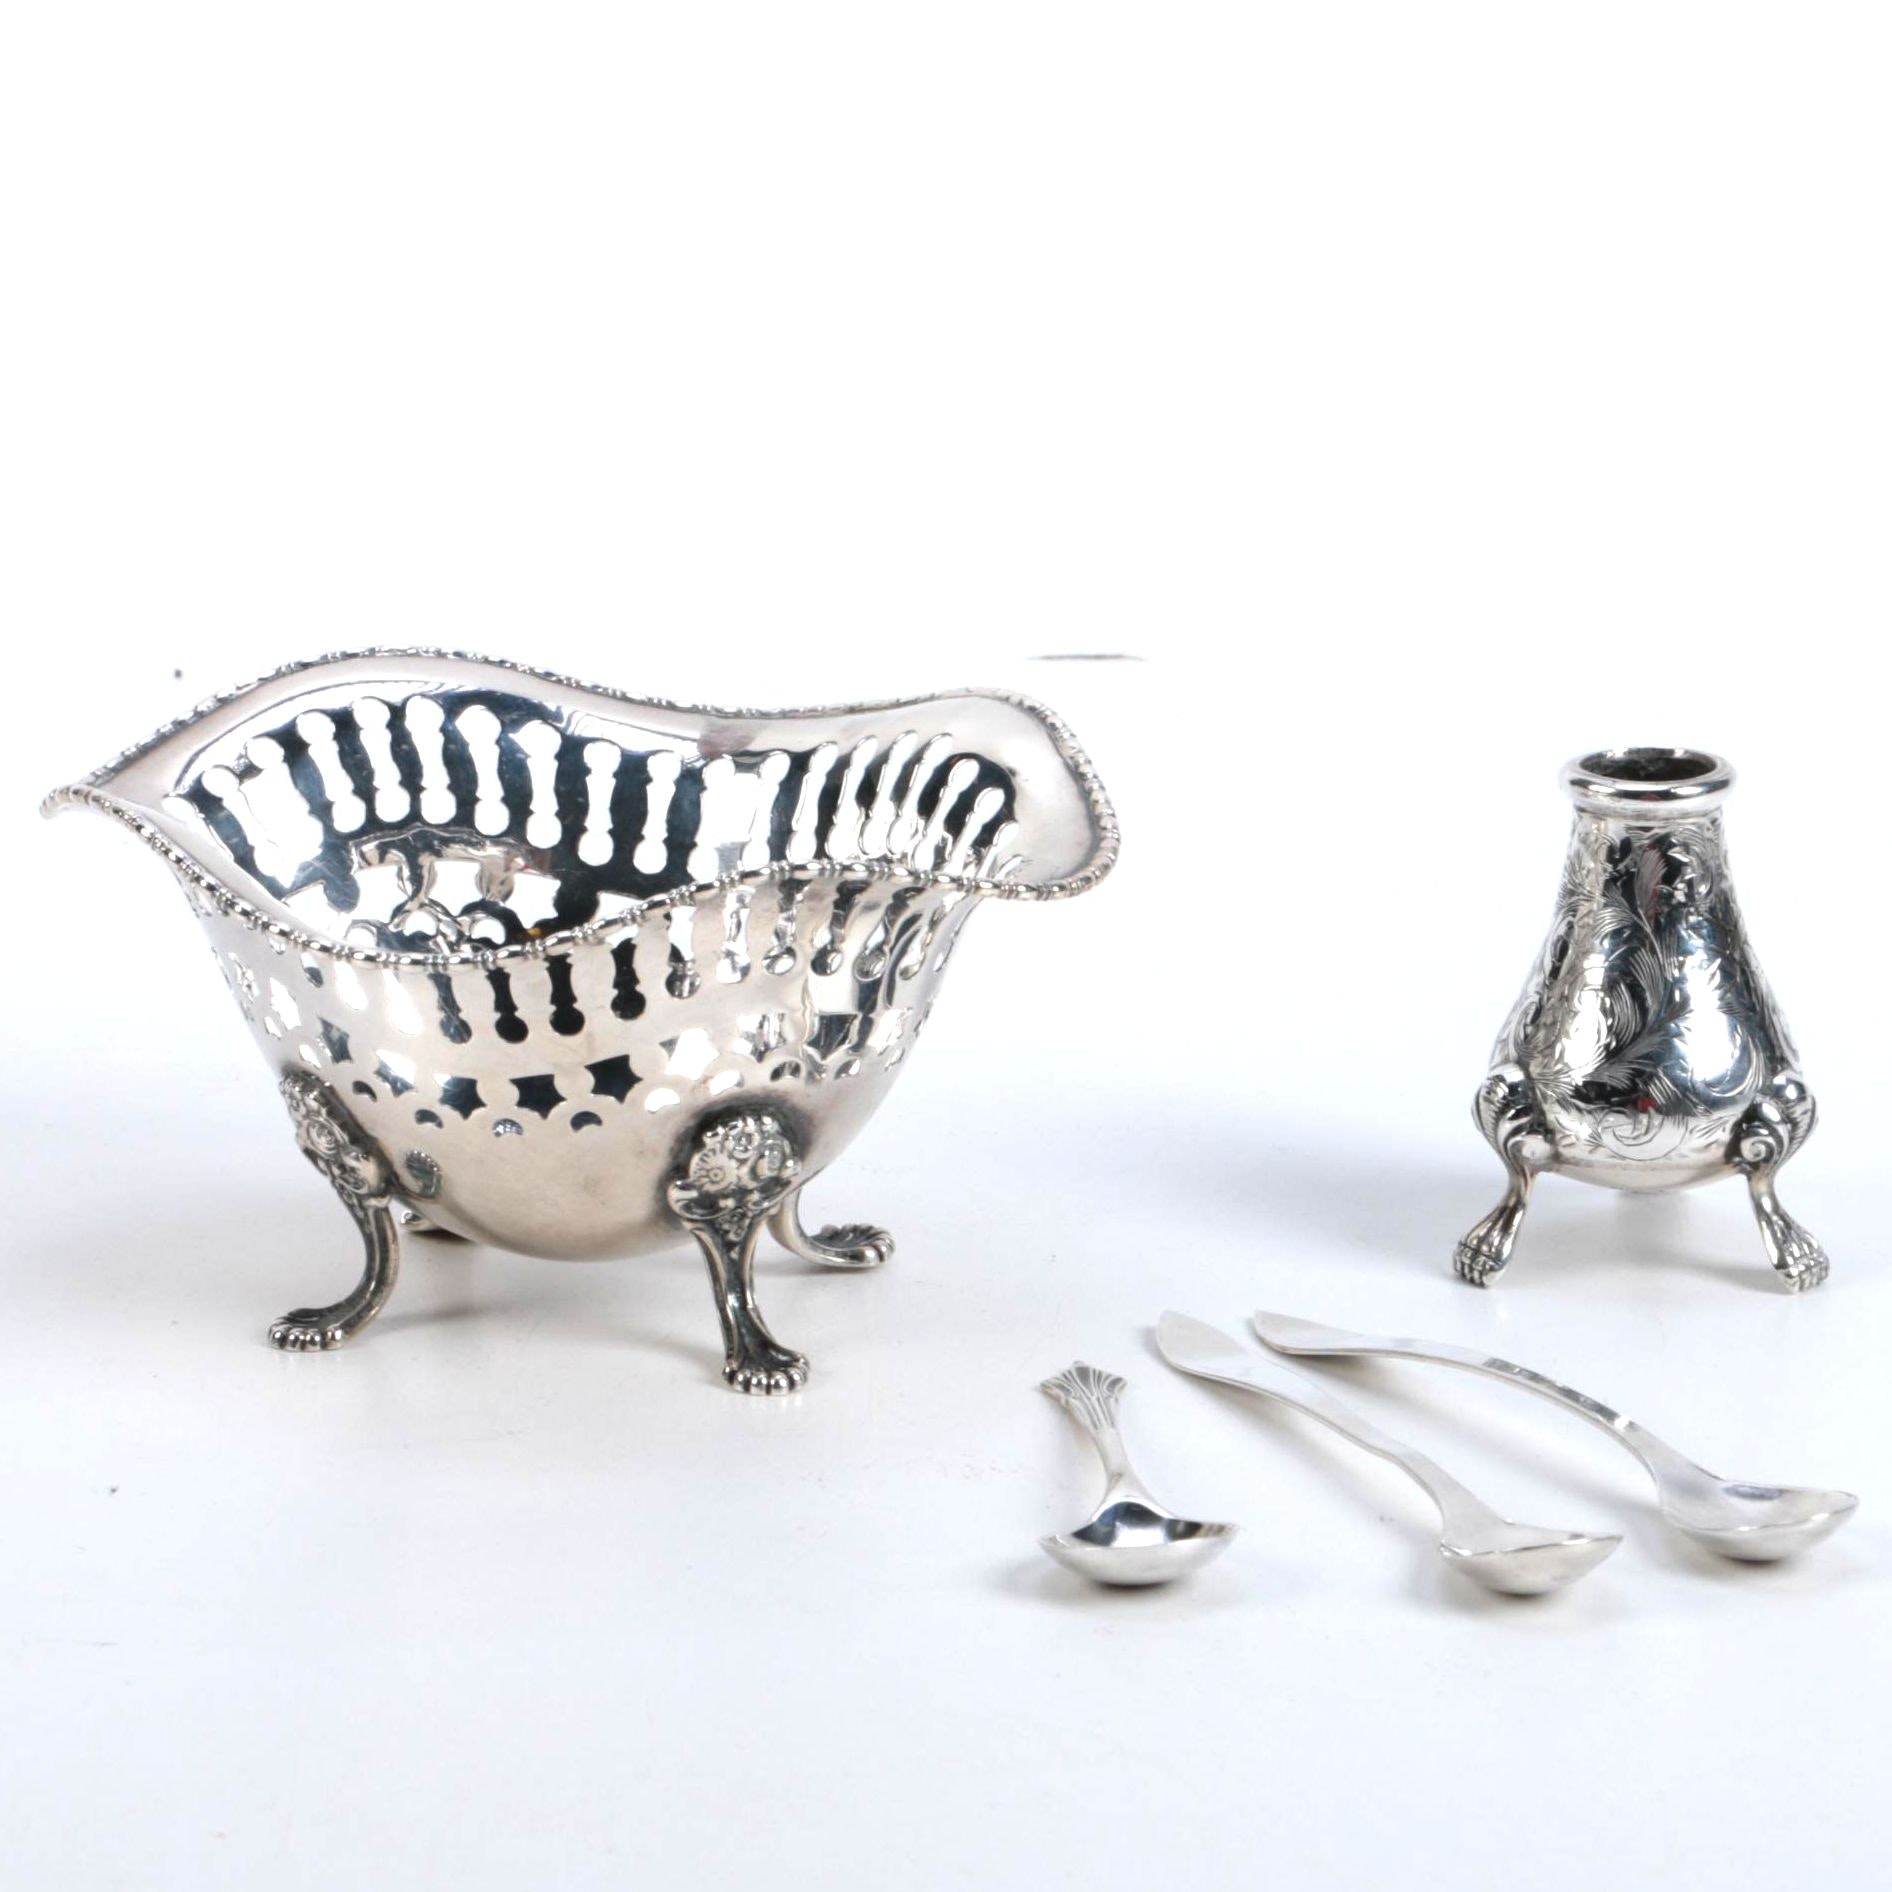 Group of Sterling Silver Tableware Featuring Towle